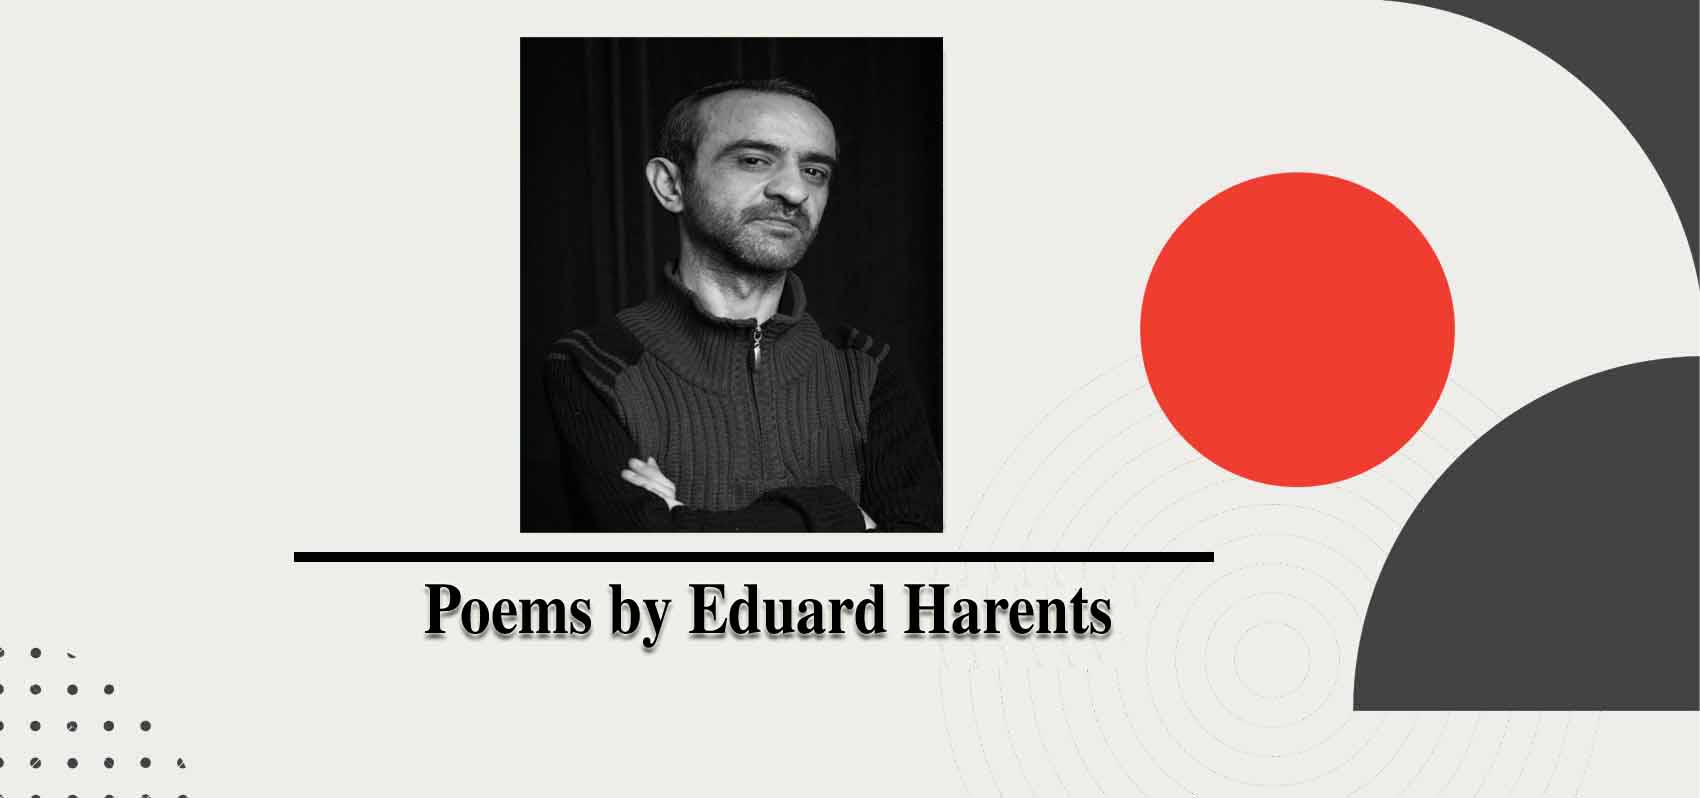 poems by Eduard Harents